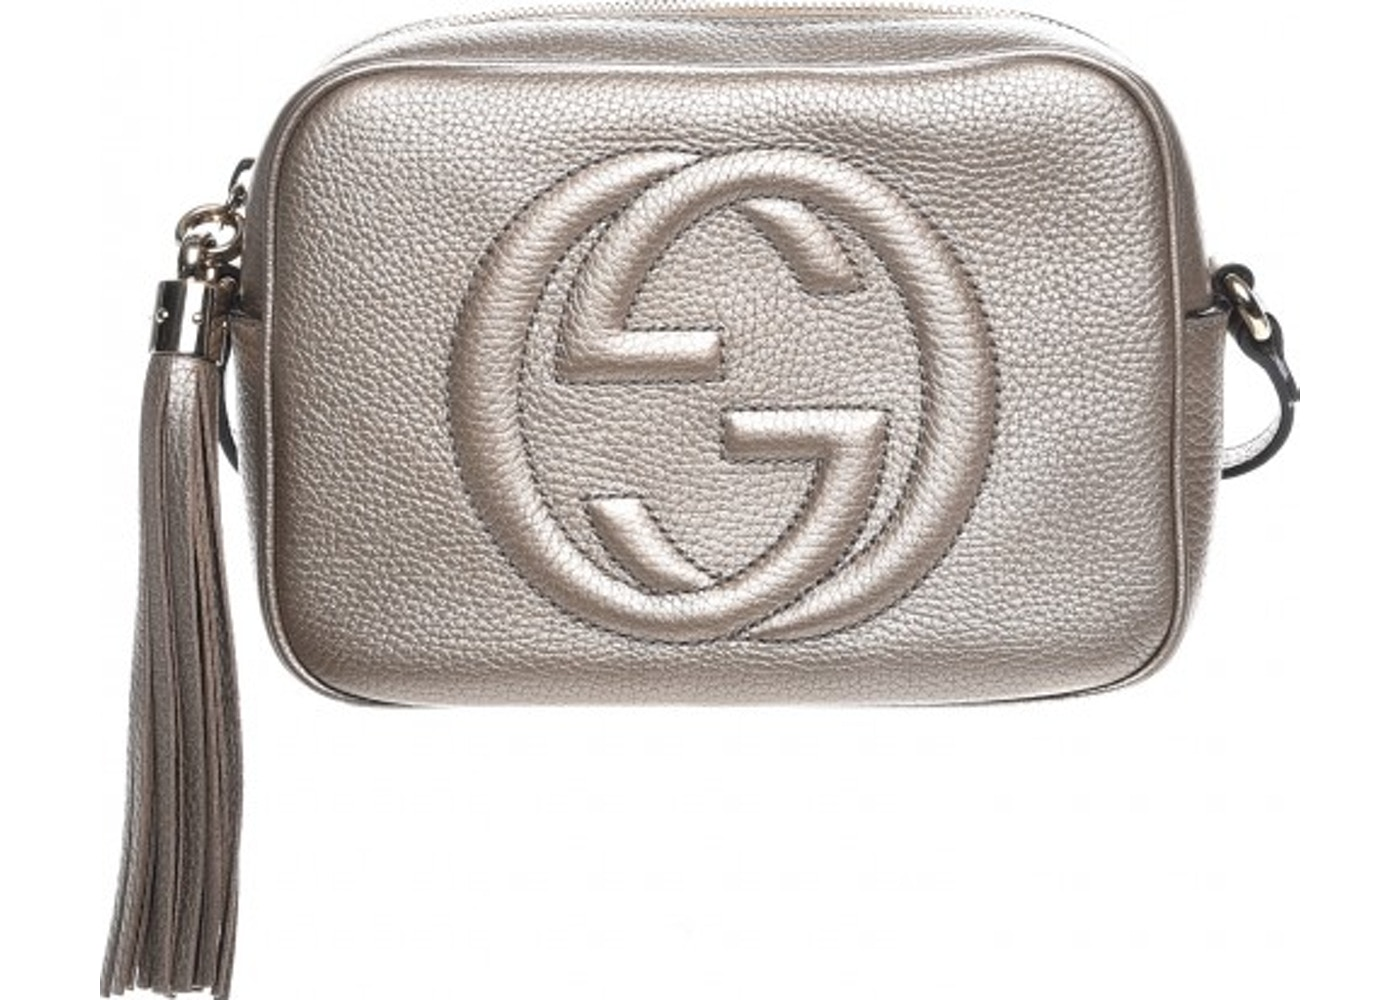 429f55435 Gucci Soho Disco Crossbody Metallic Small Silver. Metallic Small Silver